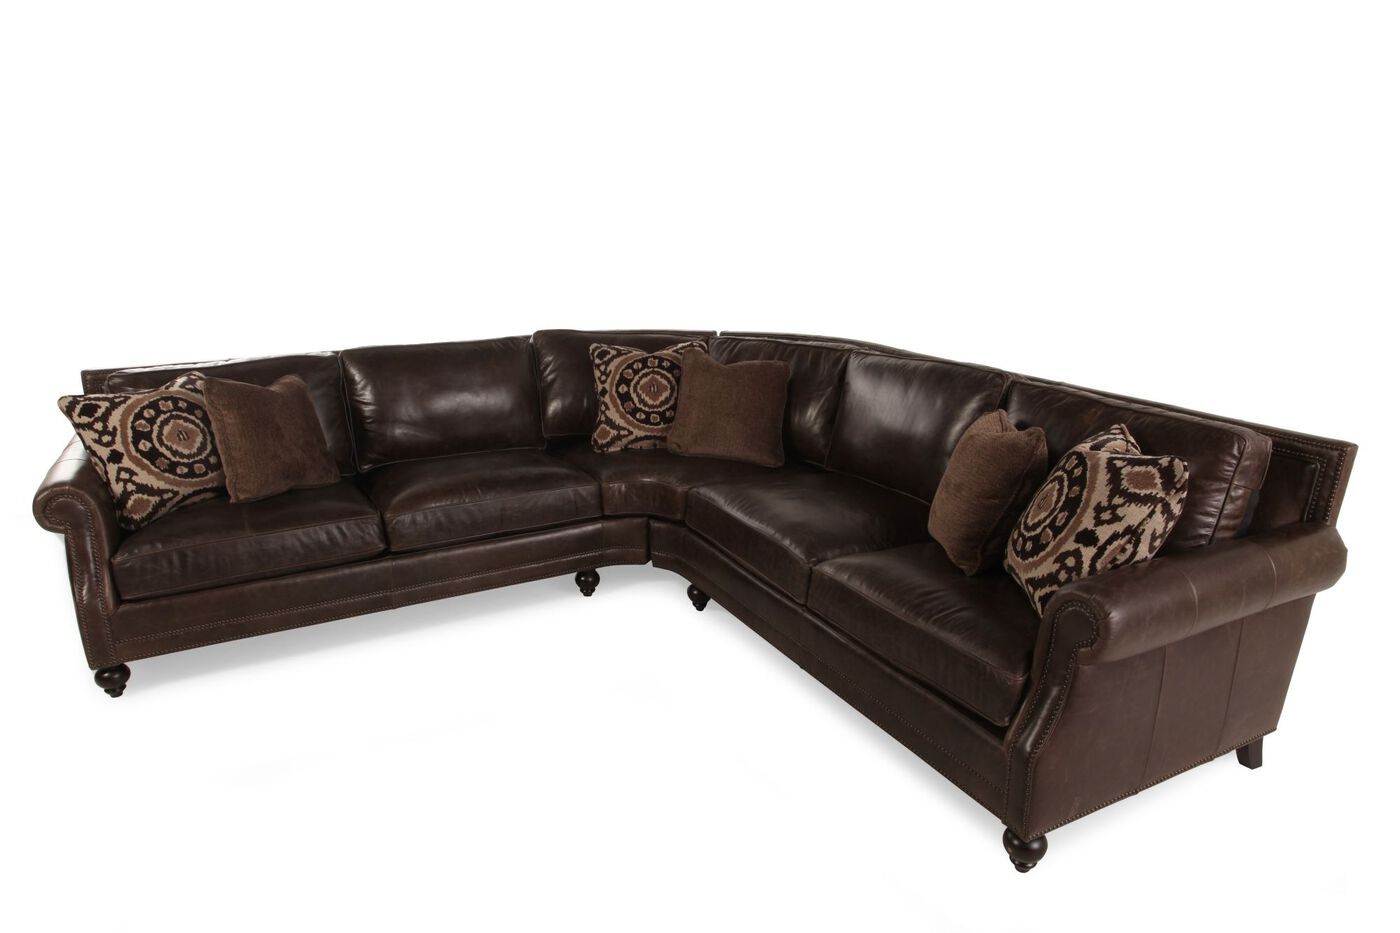 Bernhardt sectional mathis brothers for Mathis brothers living room furniture sectional sofas